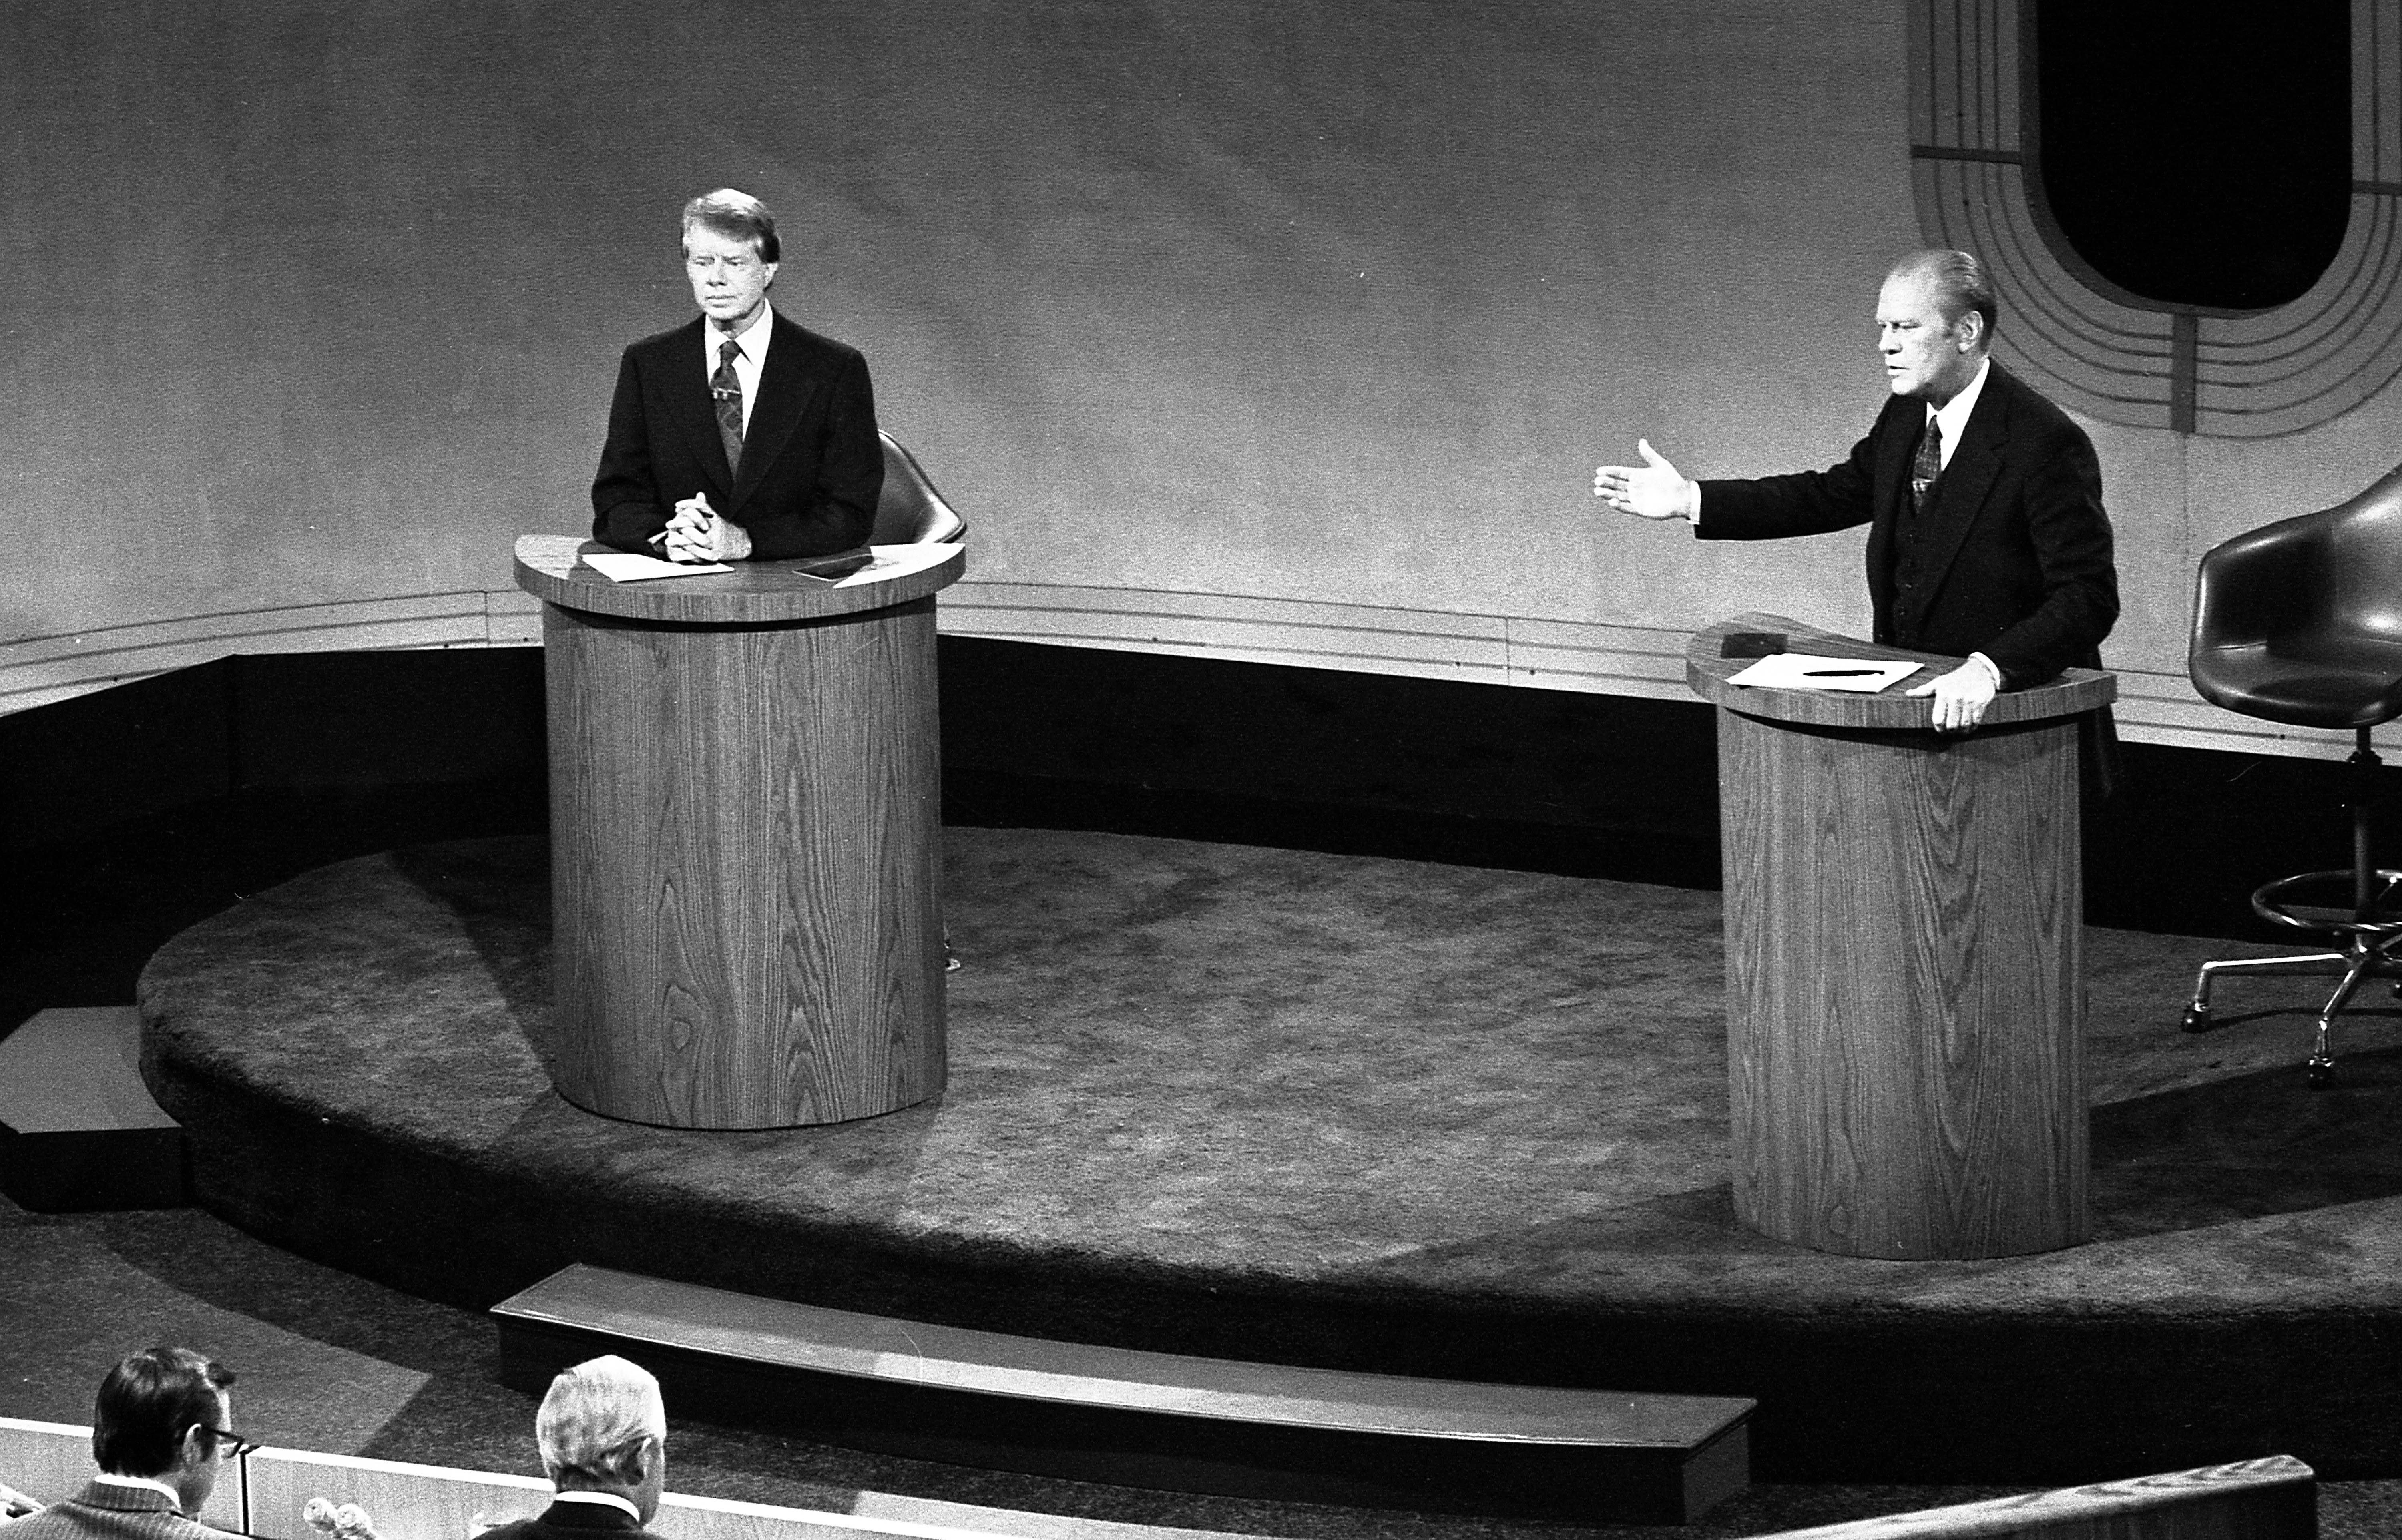 Two men stand at podiums on a stage. The man on the right is speaking while gesturing to the man on the left. Two other men are seated, facing the podiums.